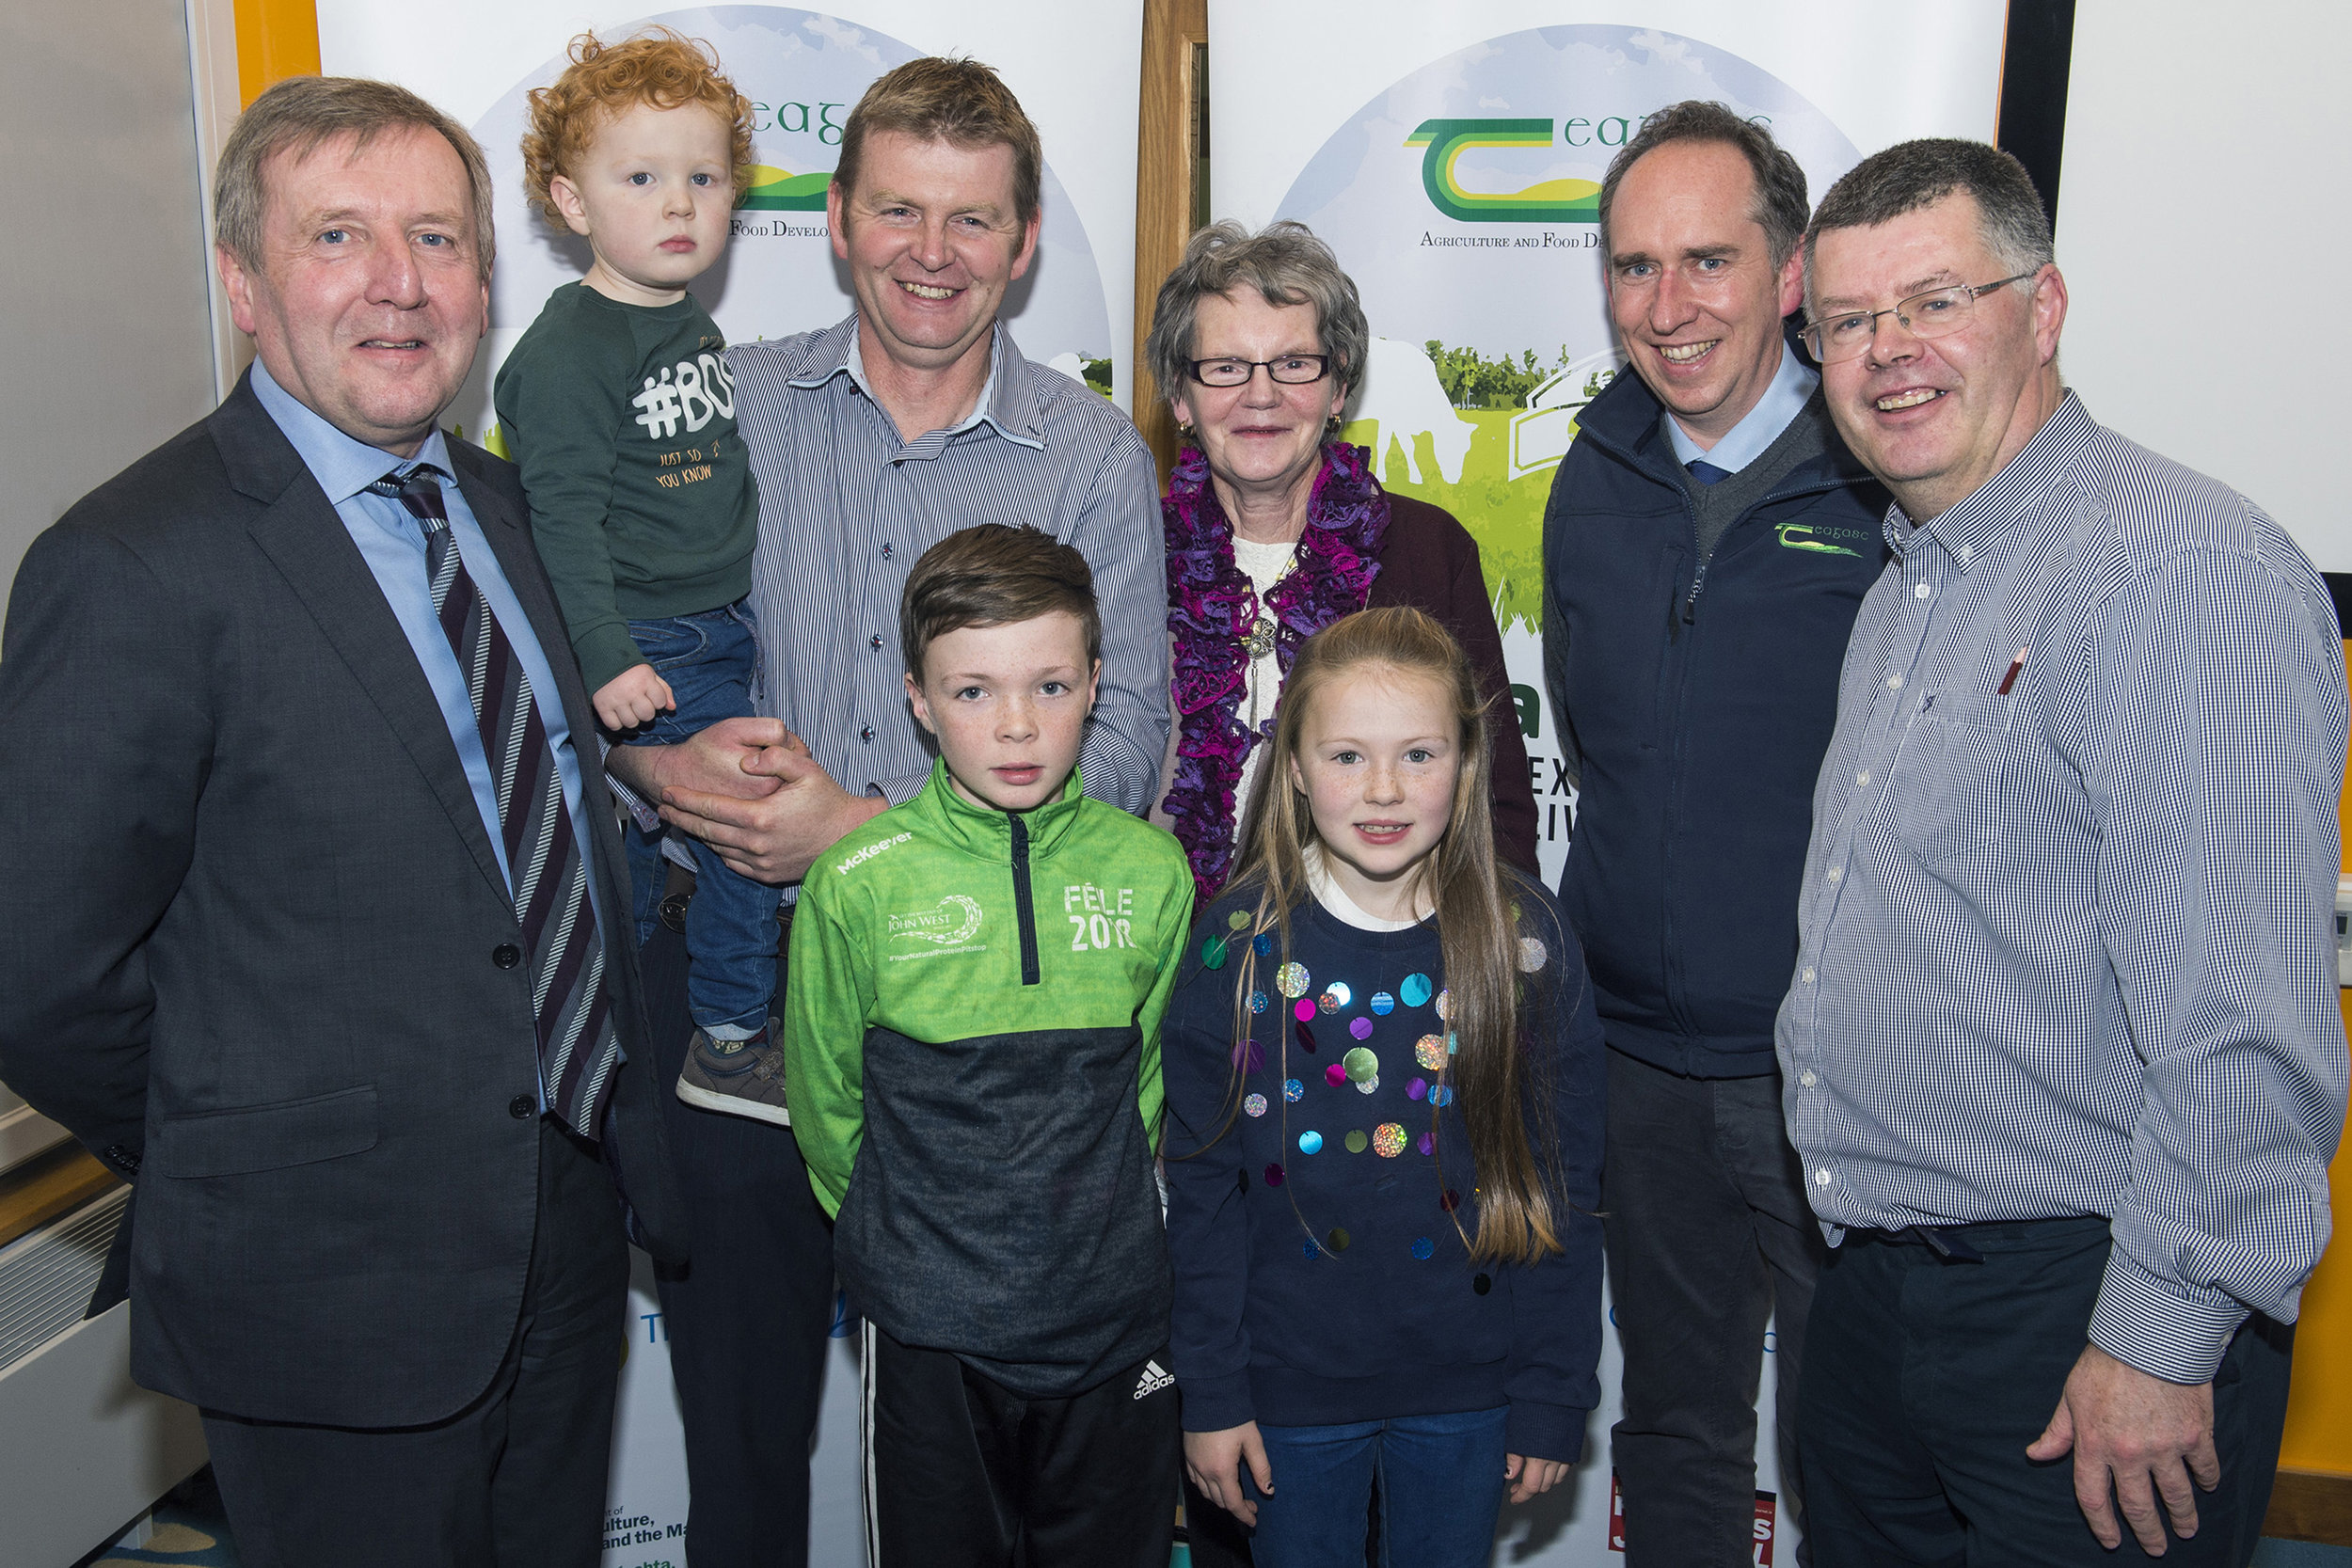 Back row: Minister Creed pictured with Conor, John and Mary MacNamara, Padraig Fitzgerald Teagasc and Ger Courtney Teagasc. Front row: Padraic and Ailbhe MacNamara